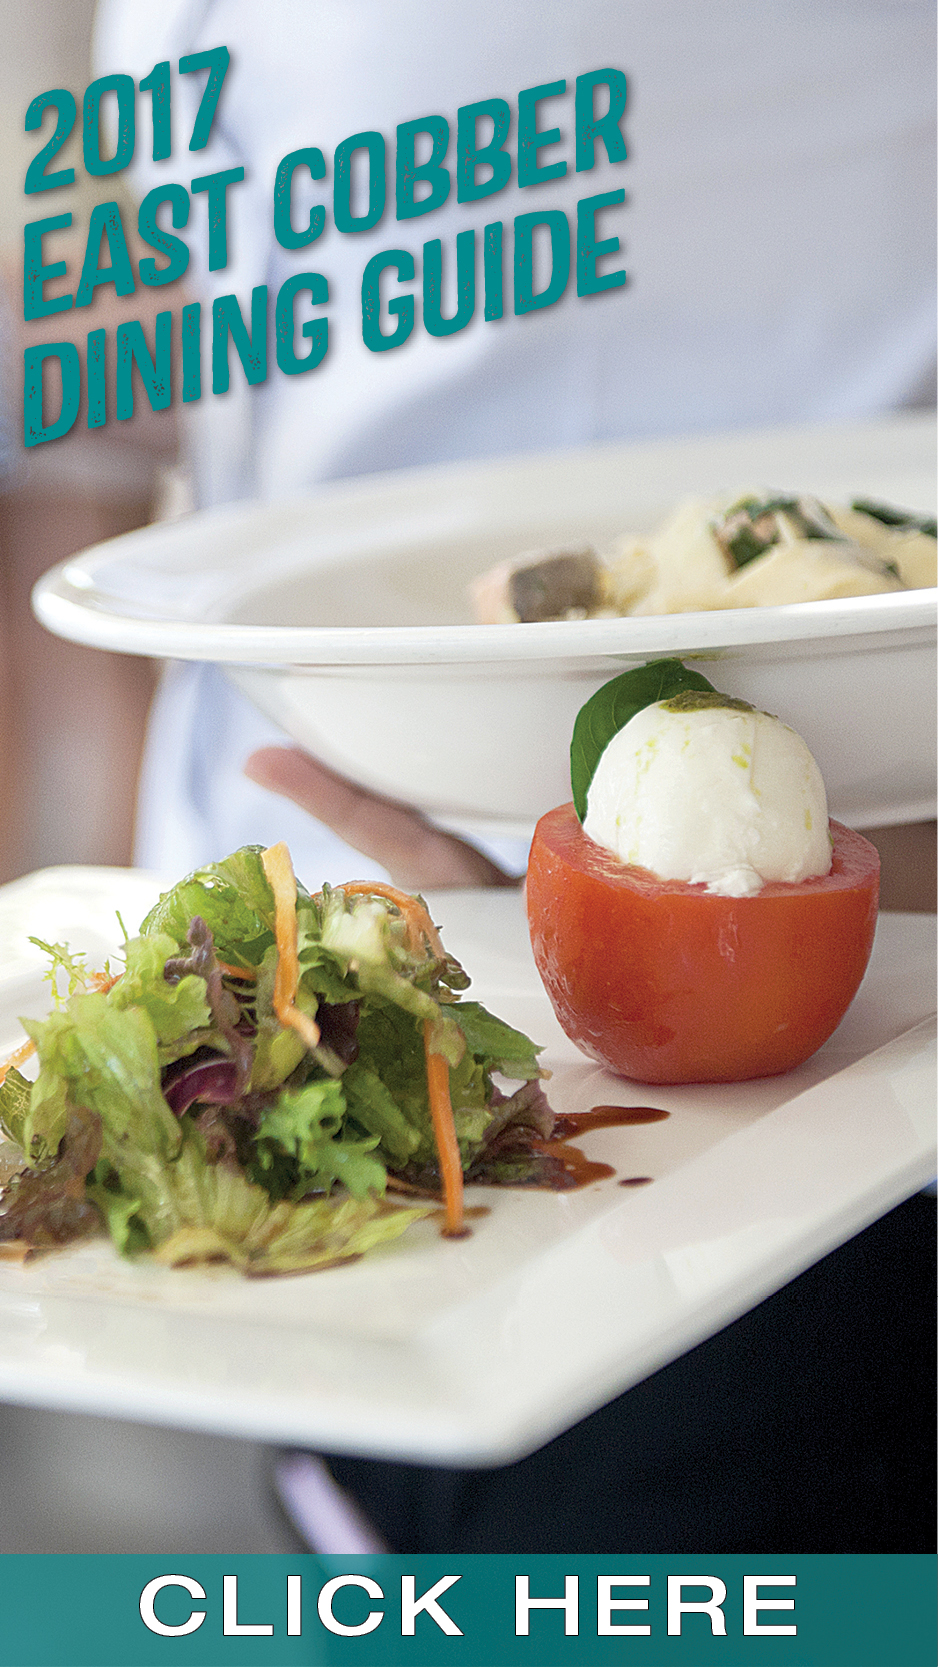 Download the East Cobber Dining Guide